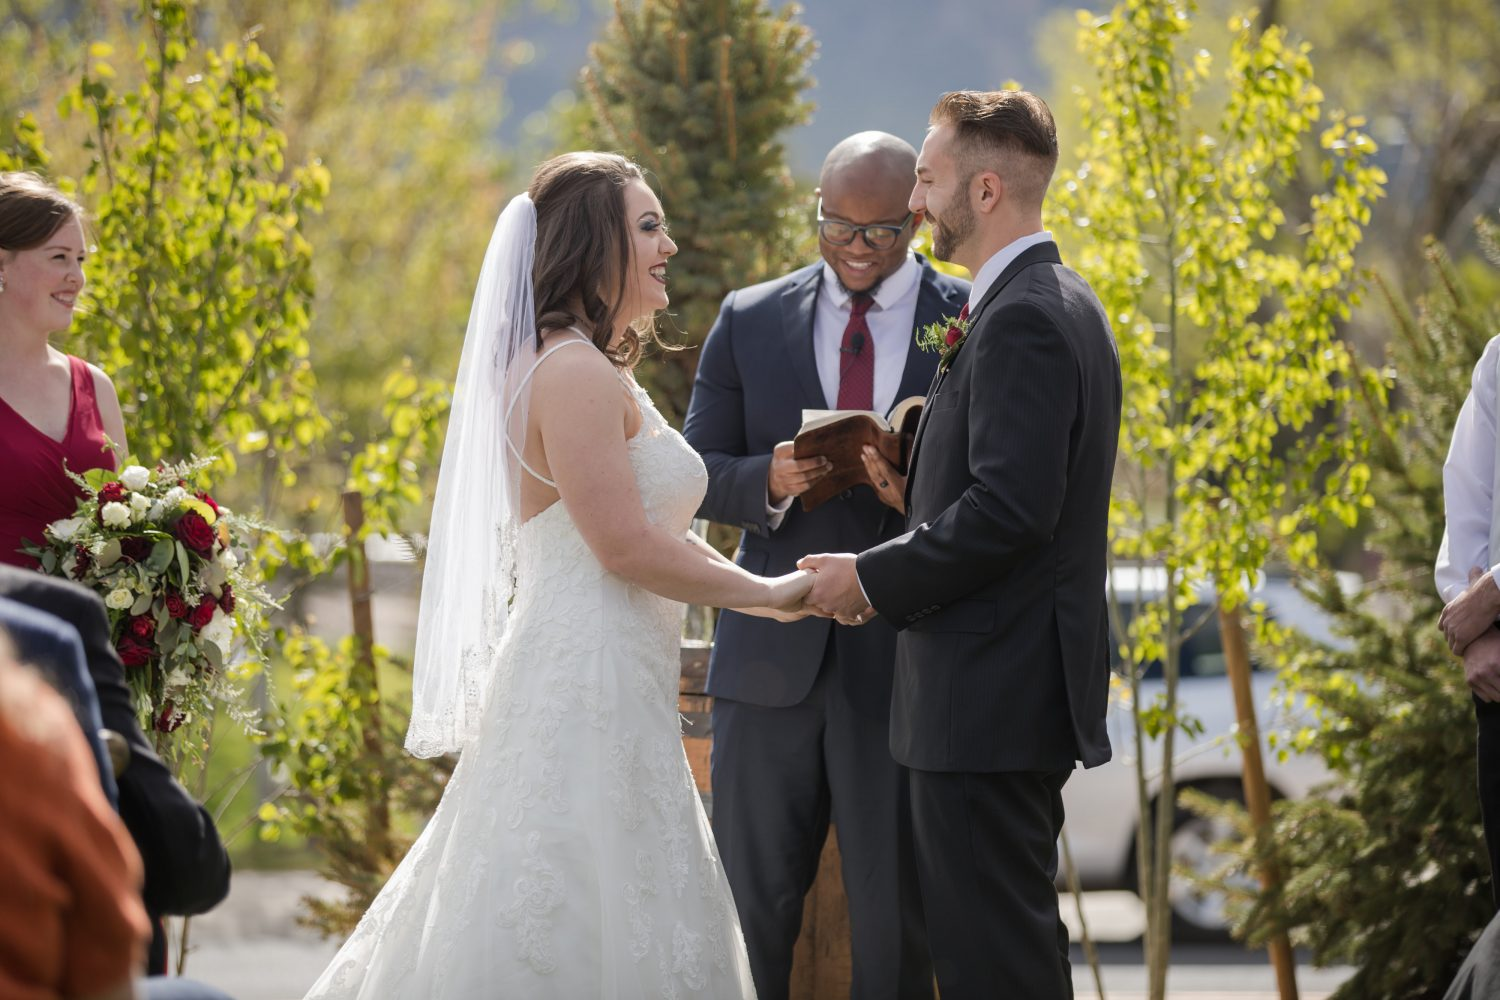 Wedding Ceremony at Hearth House - Gunn Wedding 2019 Hearth House